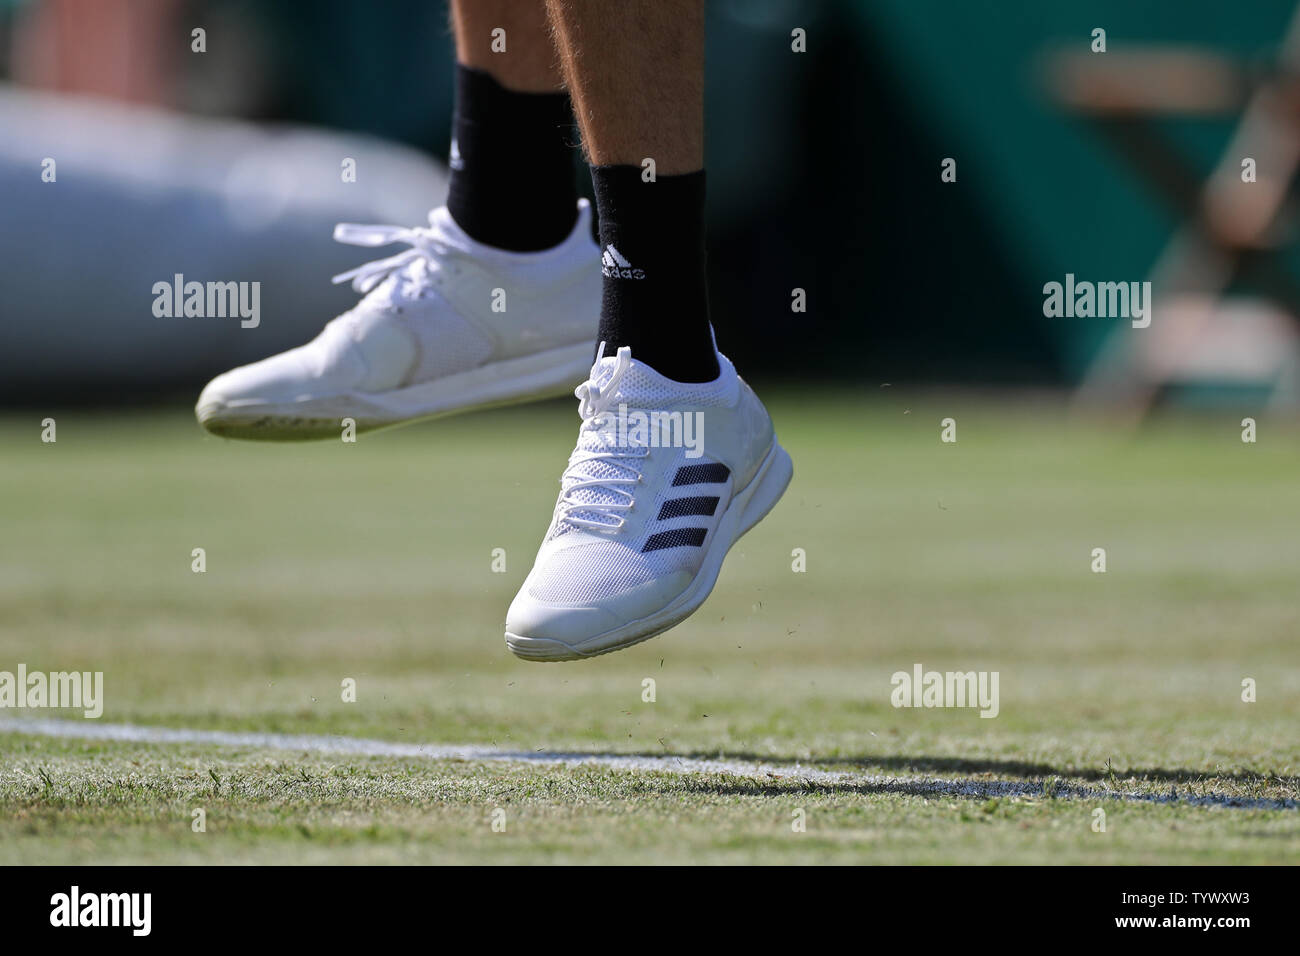 Stoke Poges England 26th June Stefanos Tsitsipas Gre Wears Adidas During The Boodles Tennis Challenge At Stoke Park Stoke Poges On Wednesday 26th June 2019 Credit Jon Bromley Mi News Credit